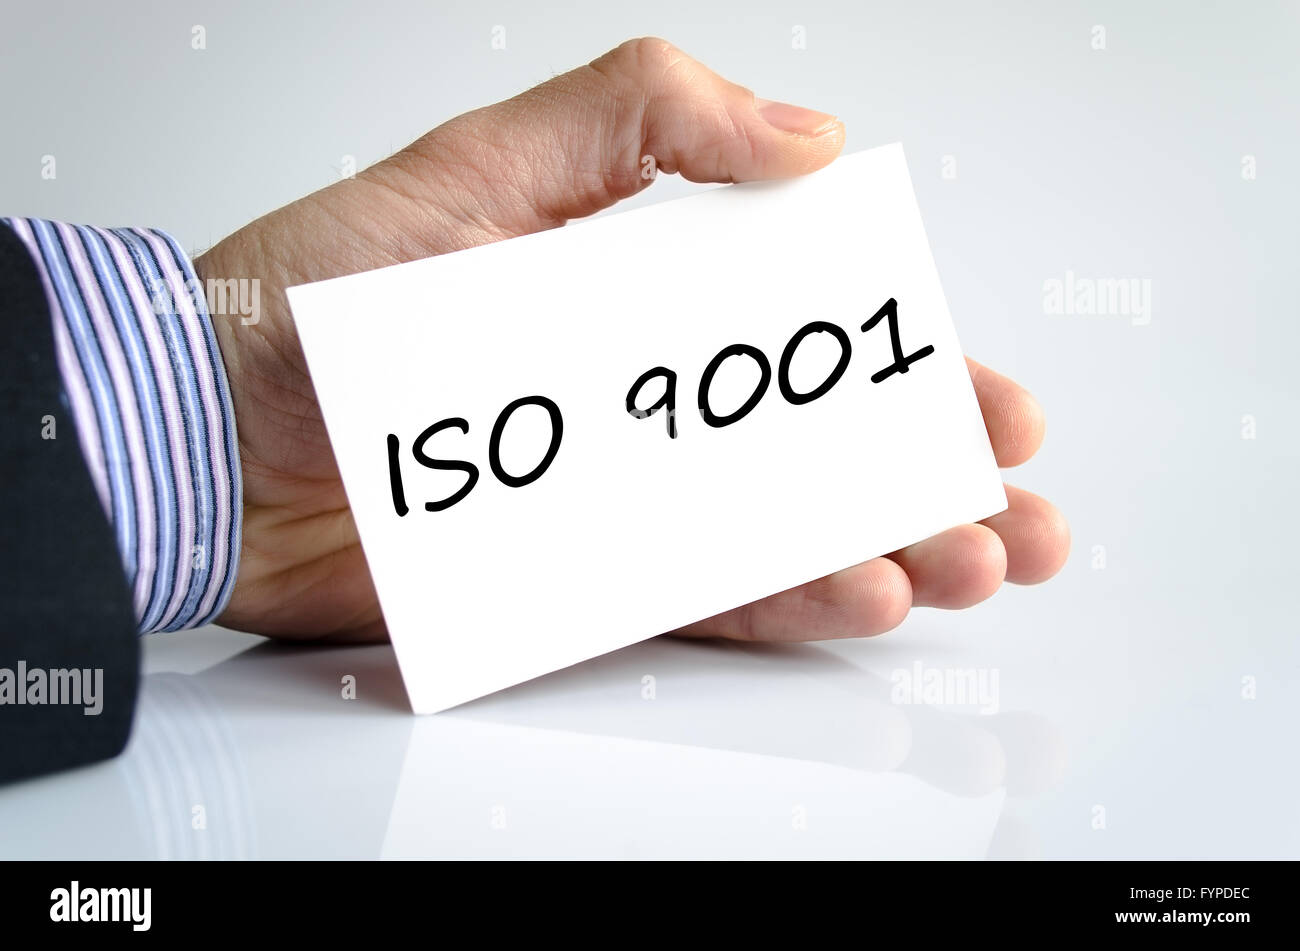 Iso 9001 text concept - Stock Image